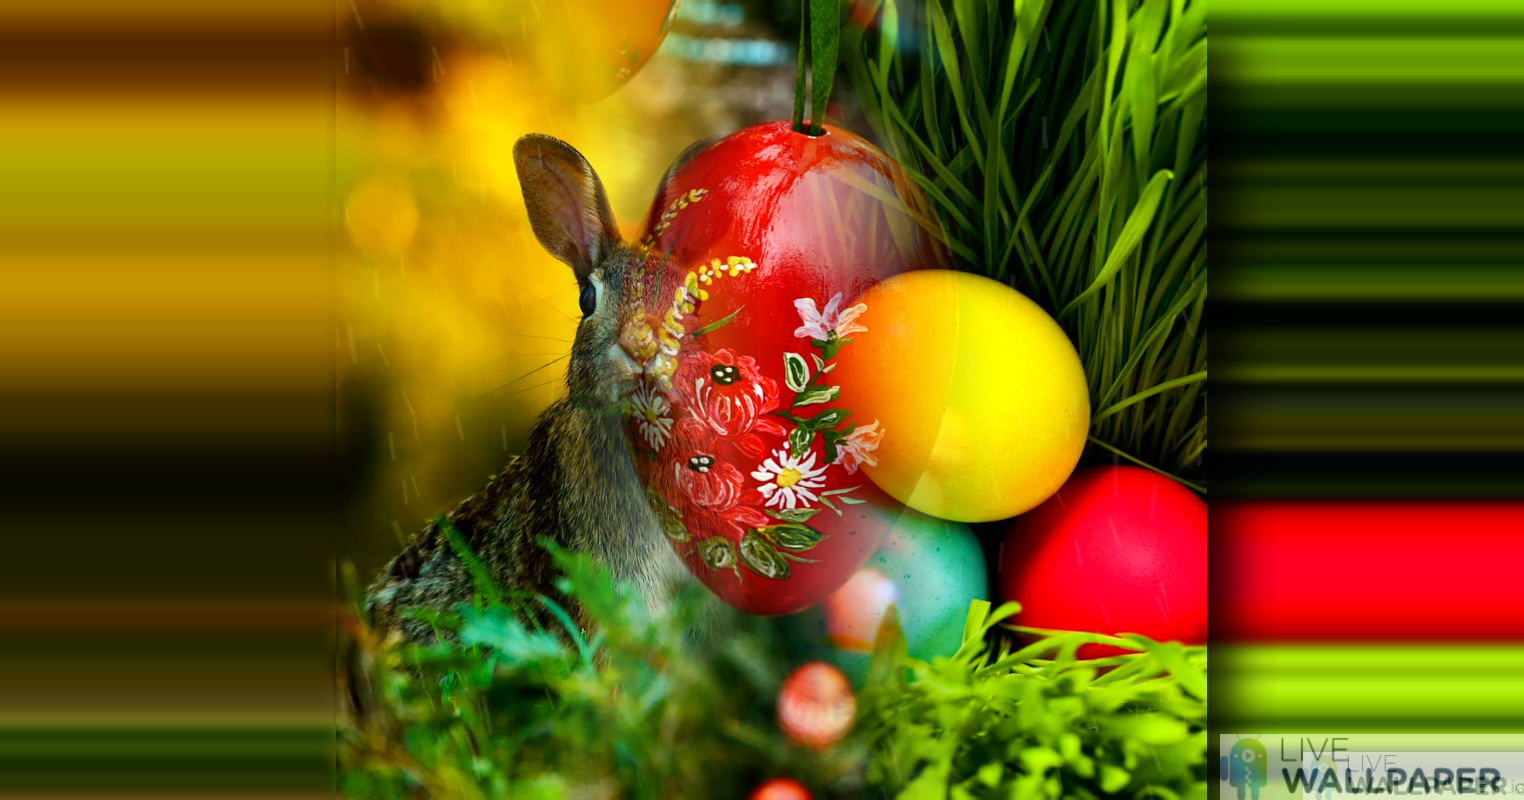 Celebrate Easter with Android wallpapers Featured Image